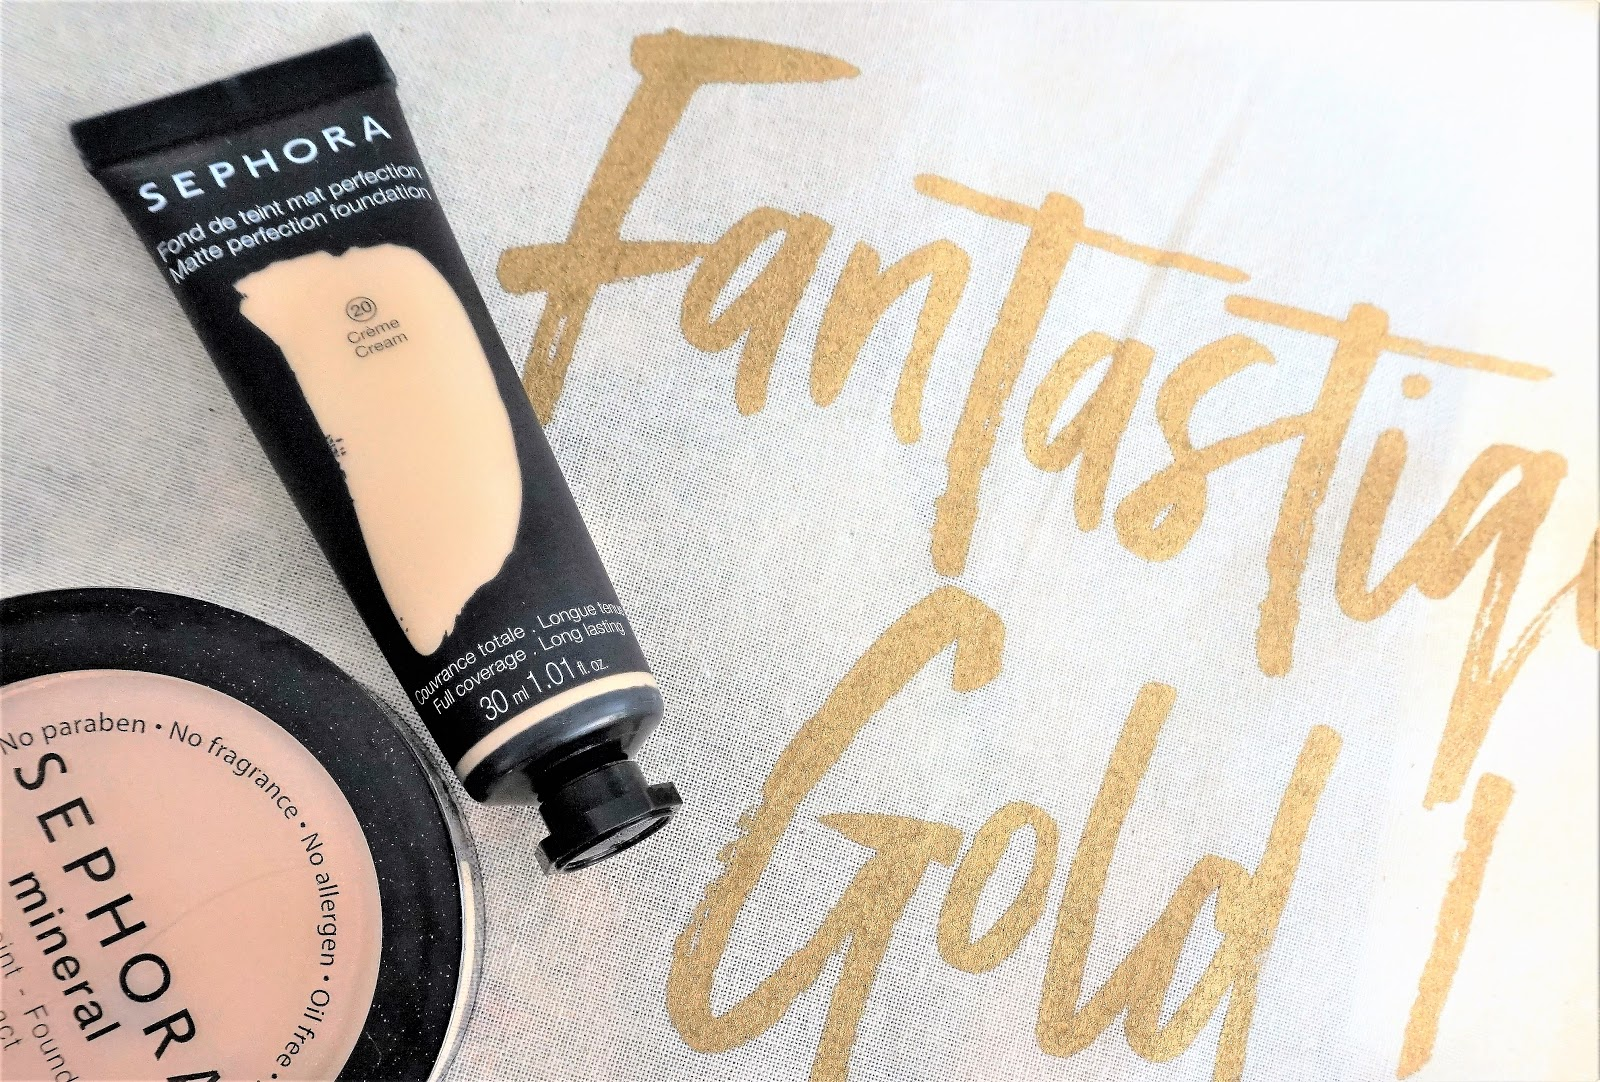 De Haul GoldForty Soirée Sephora Beauty Ma fgb7Yy6